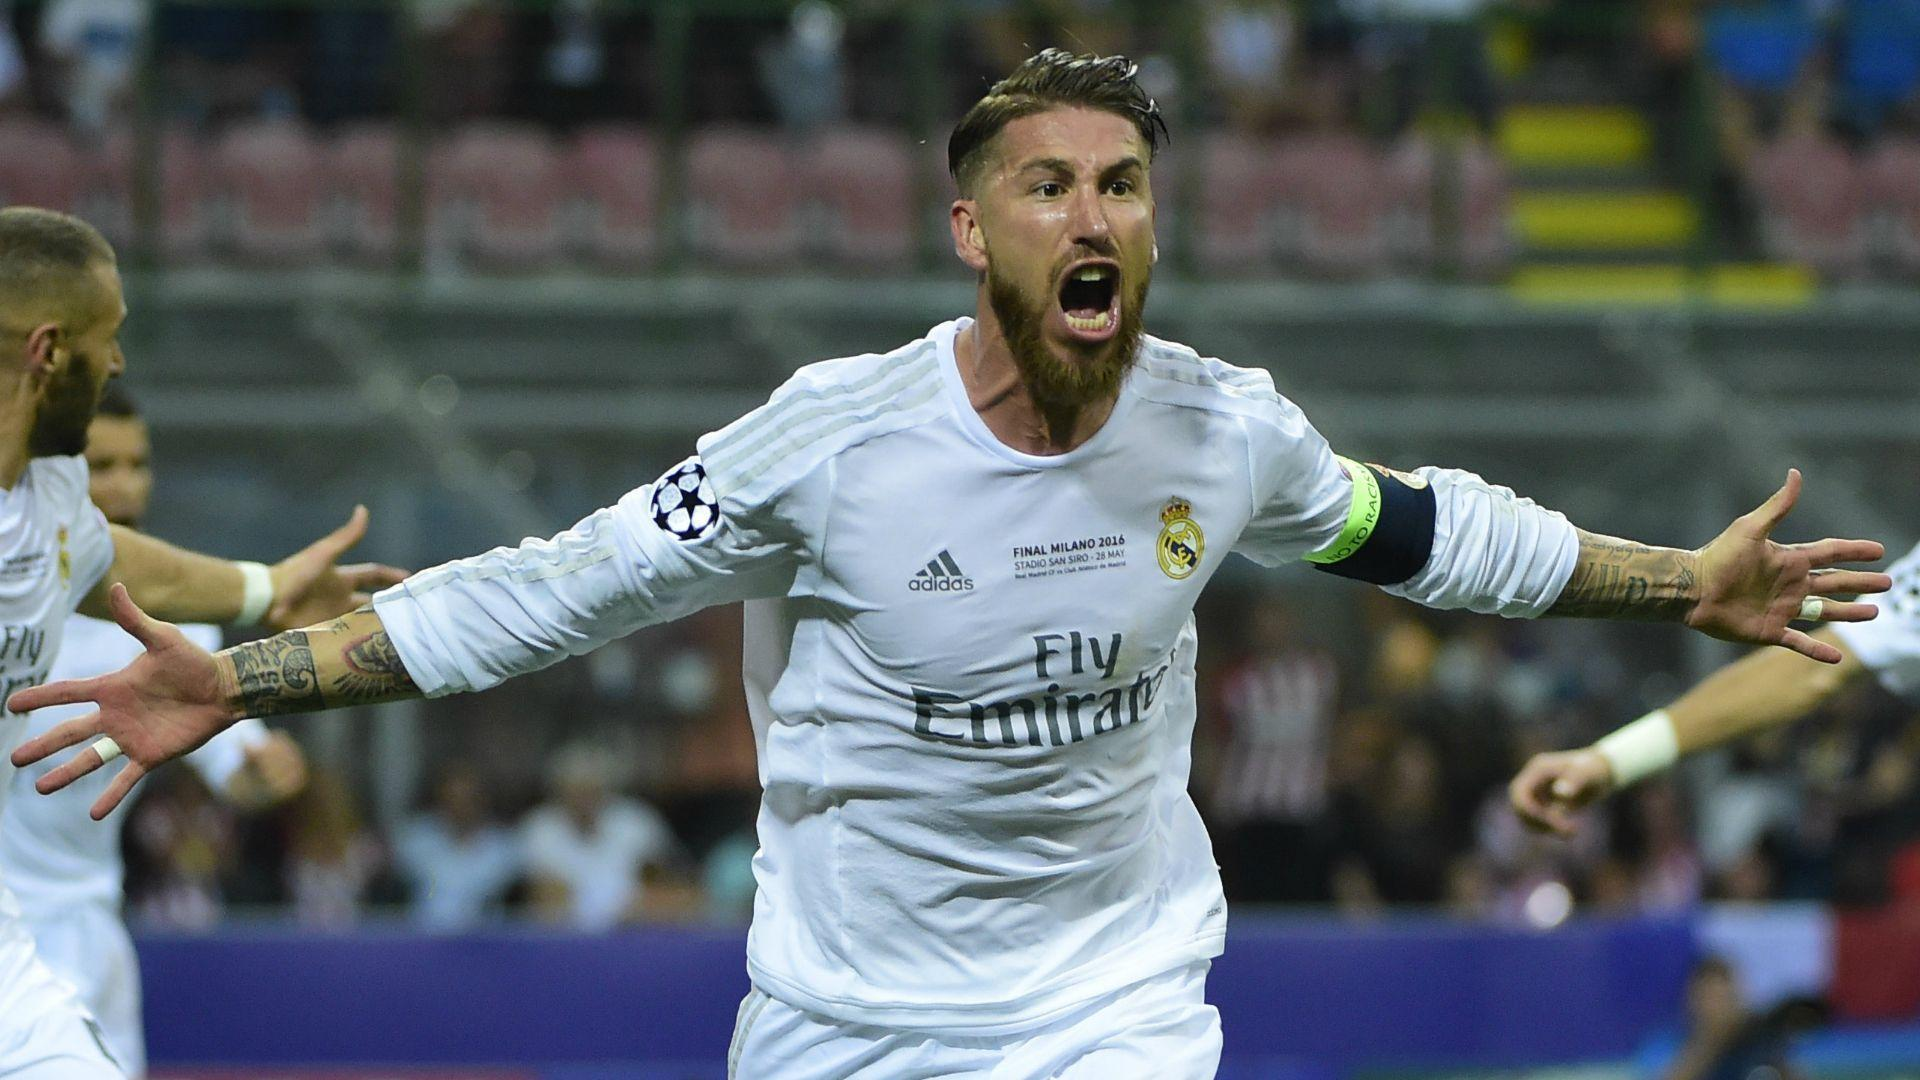 sergio ramos hd images - photo #26